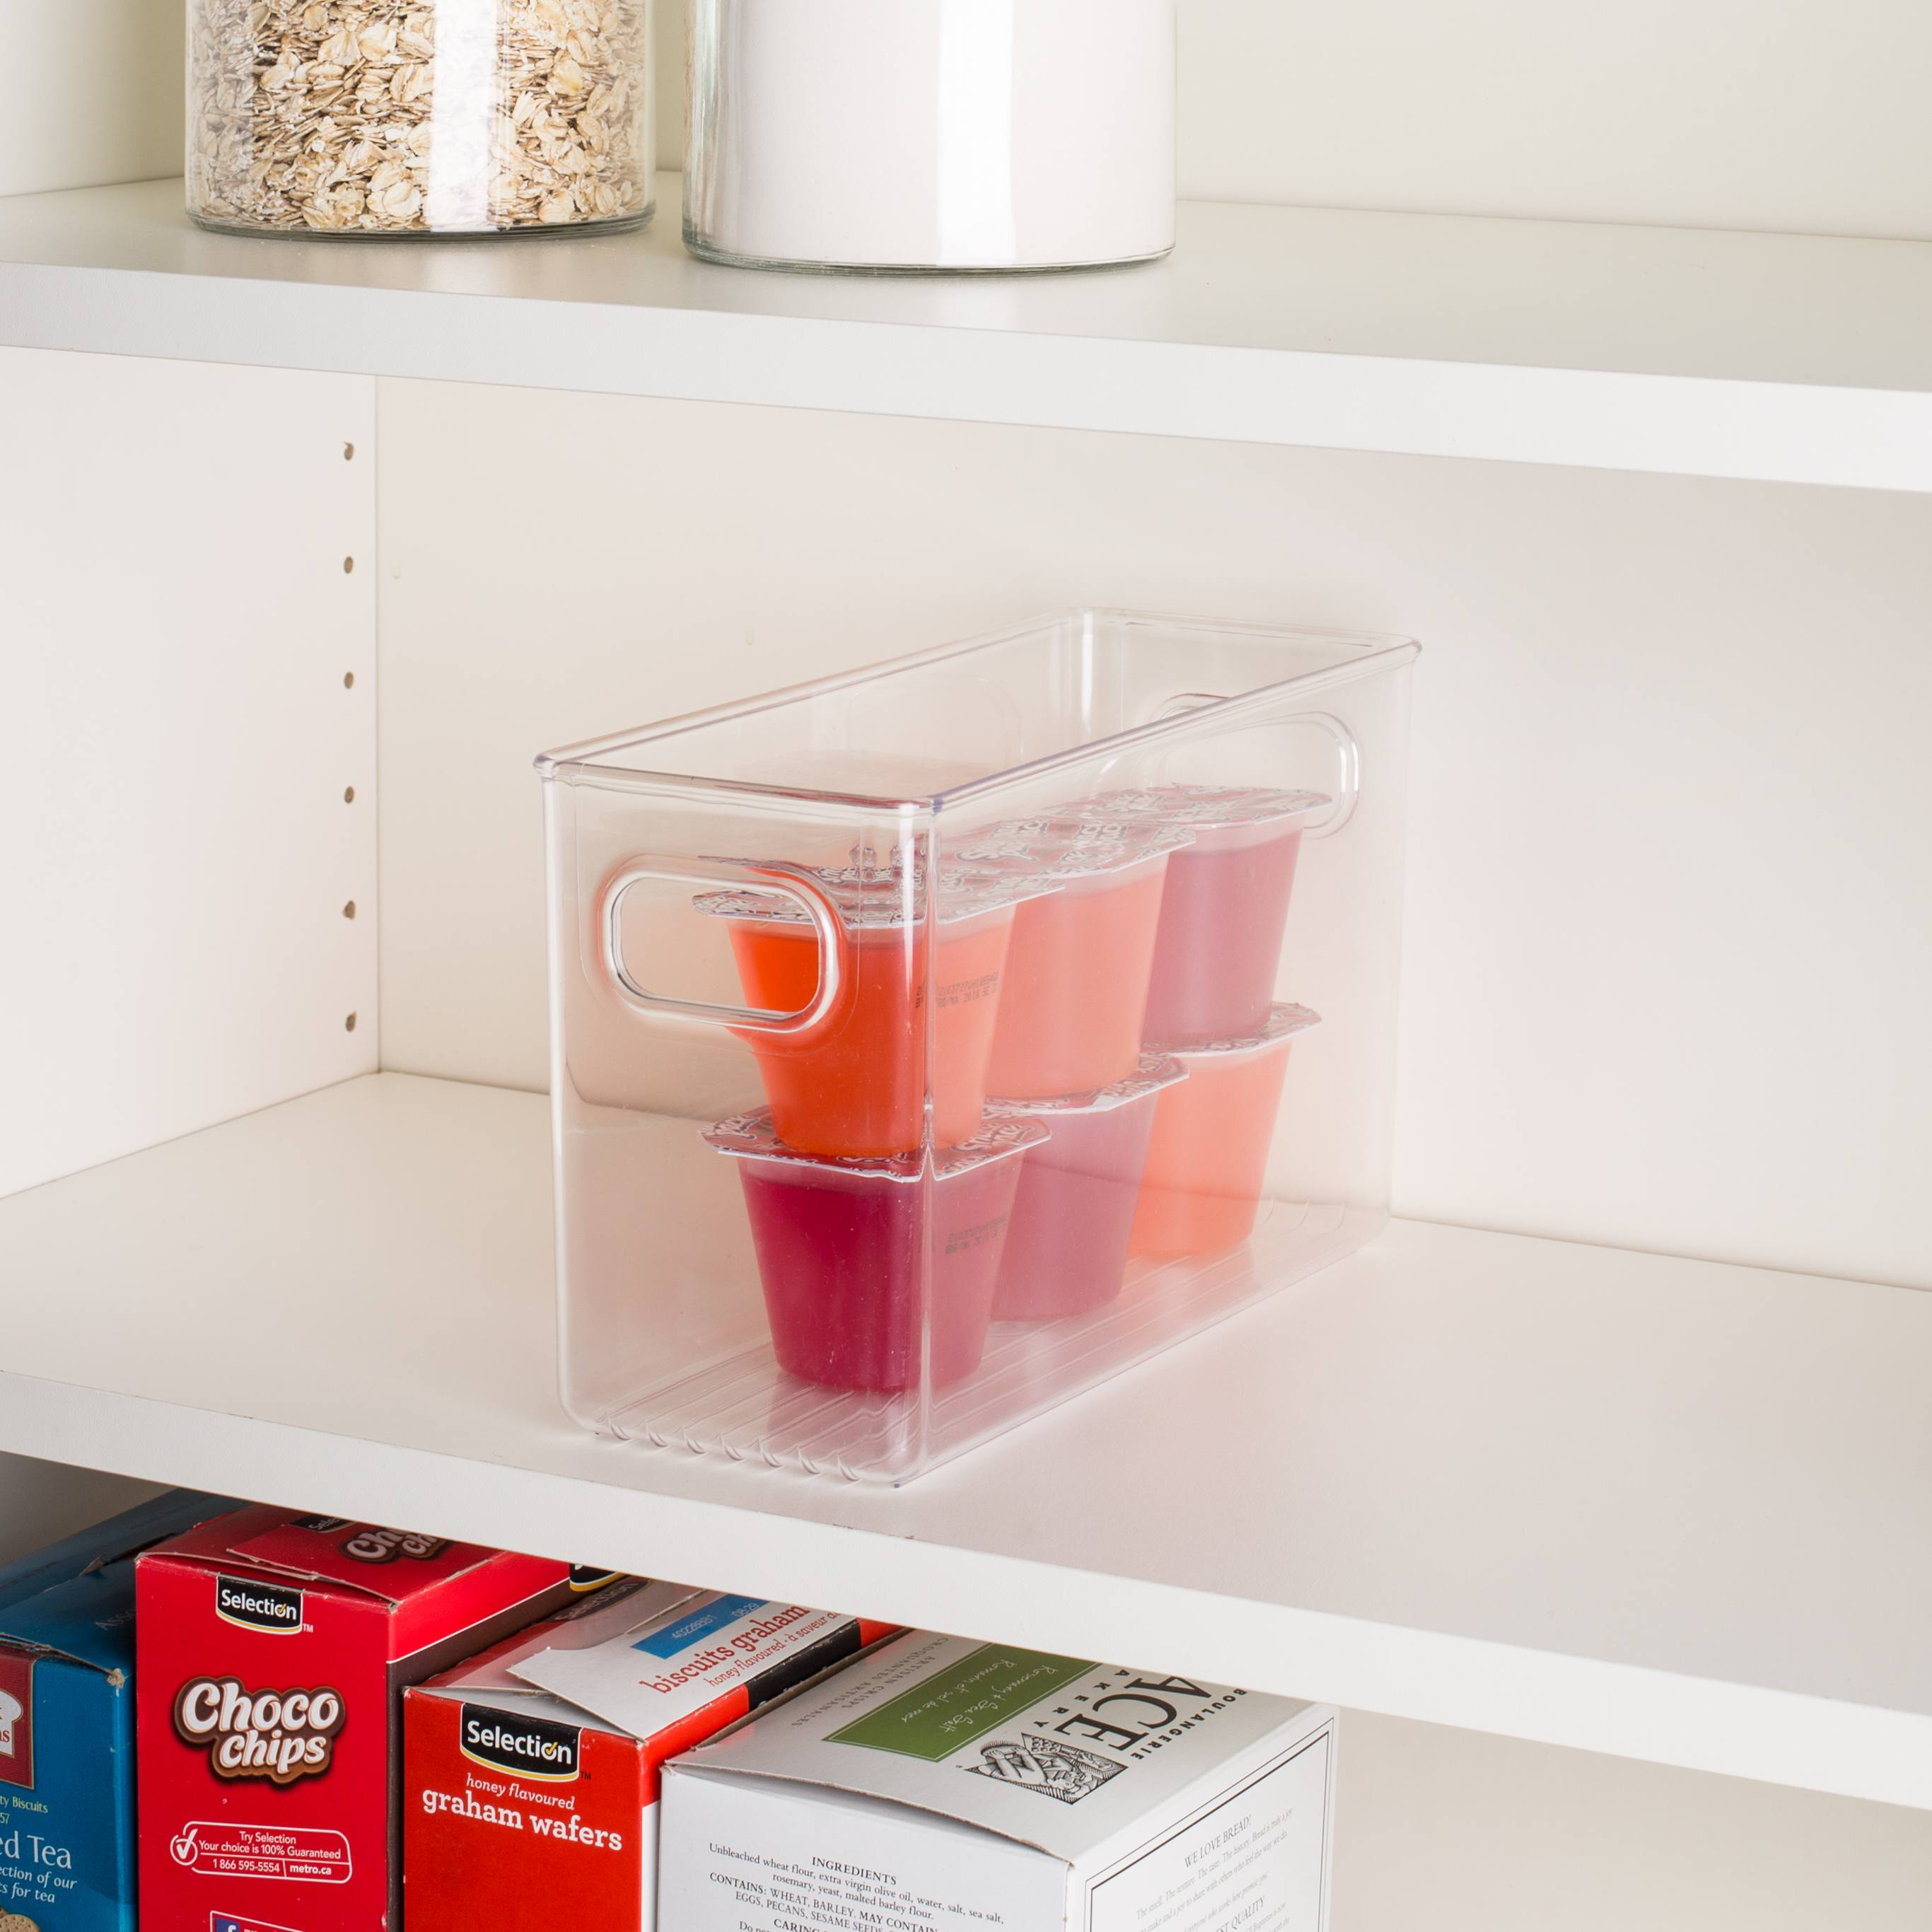 clear bin on a shelf with jello cups